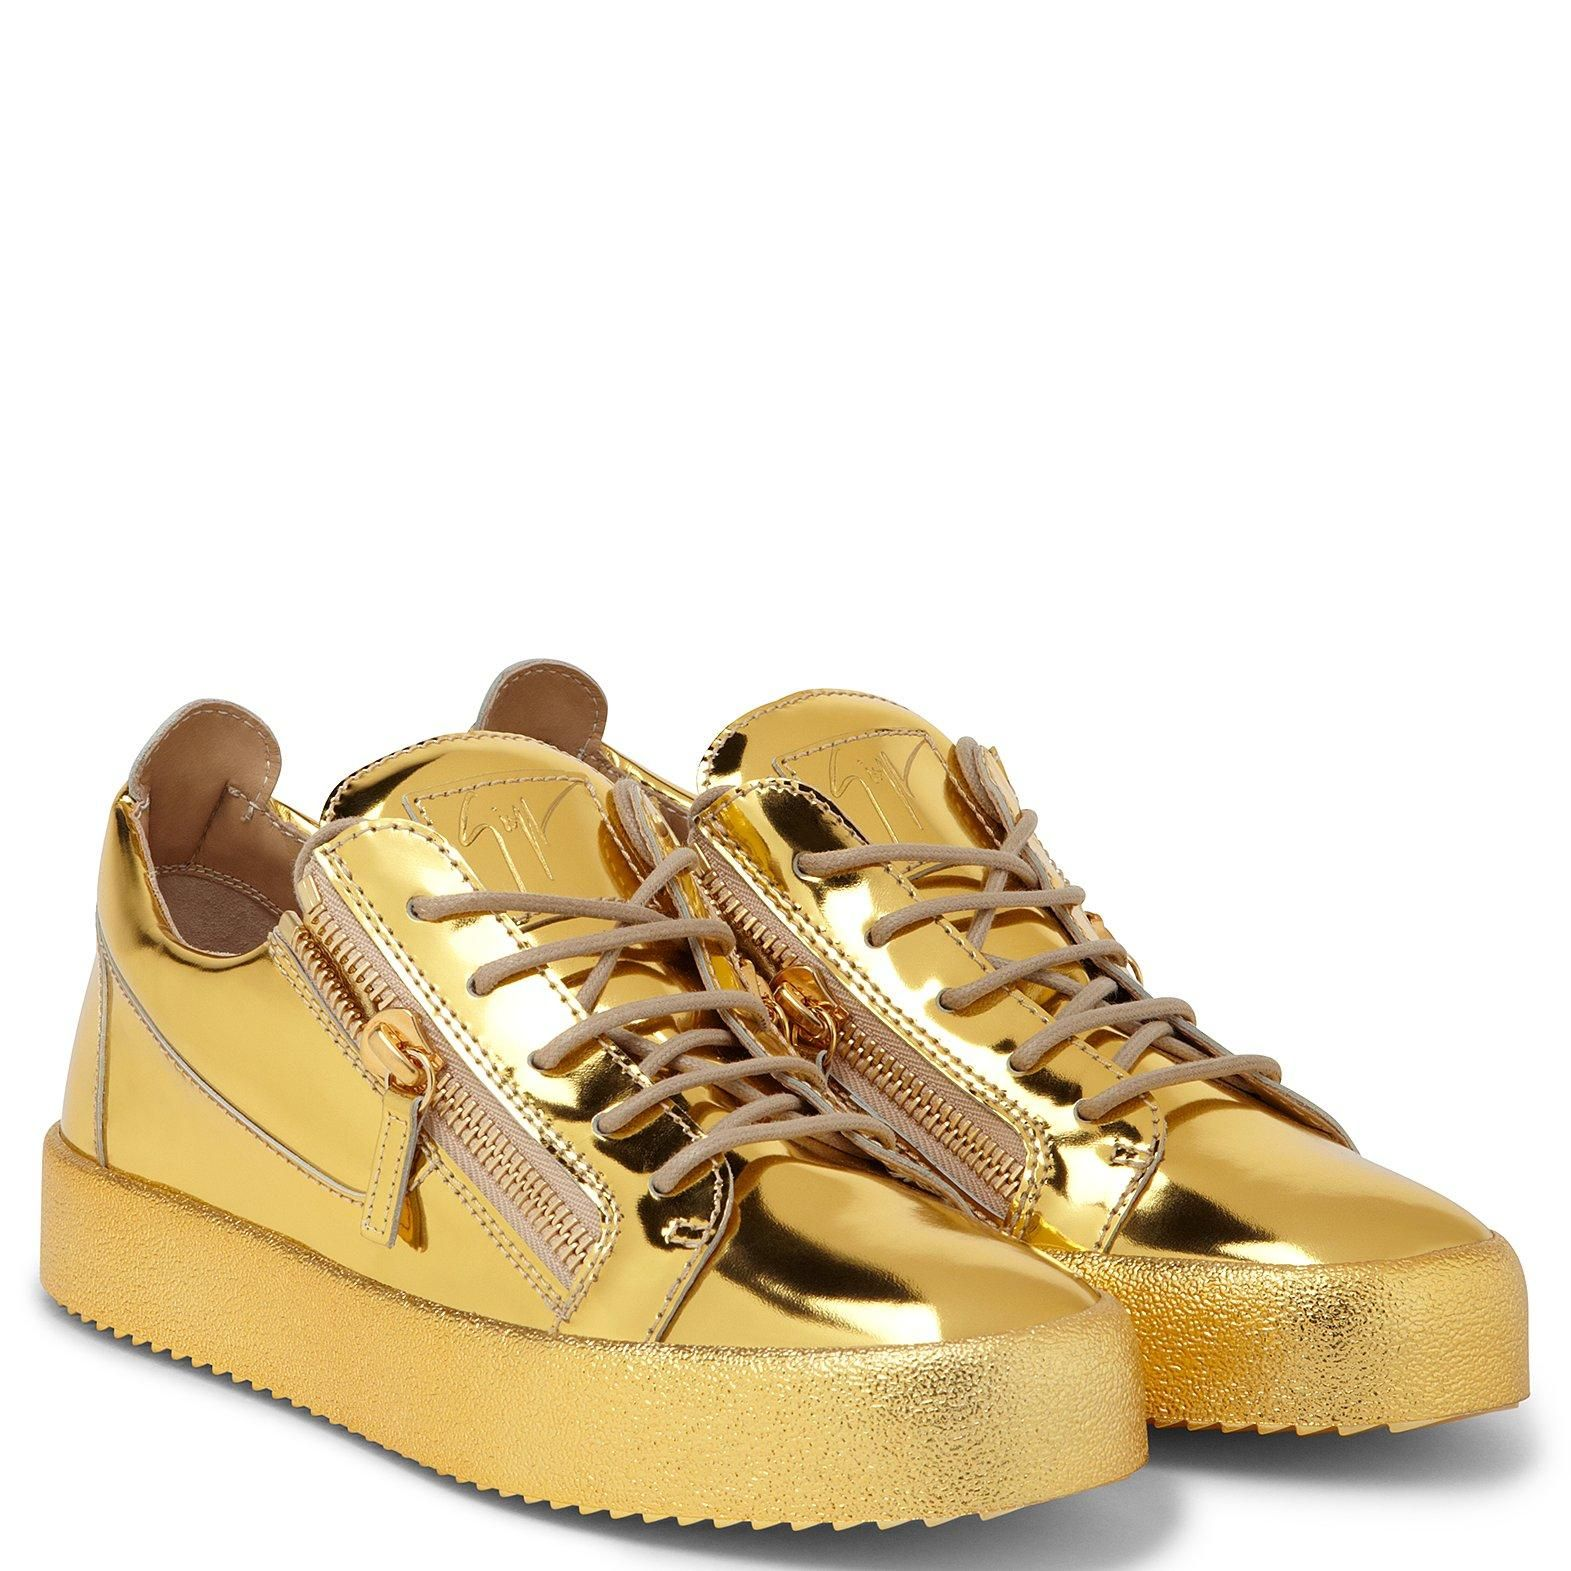 Fashion shoes sneakers